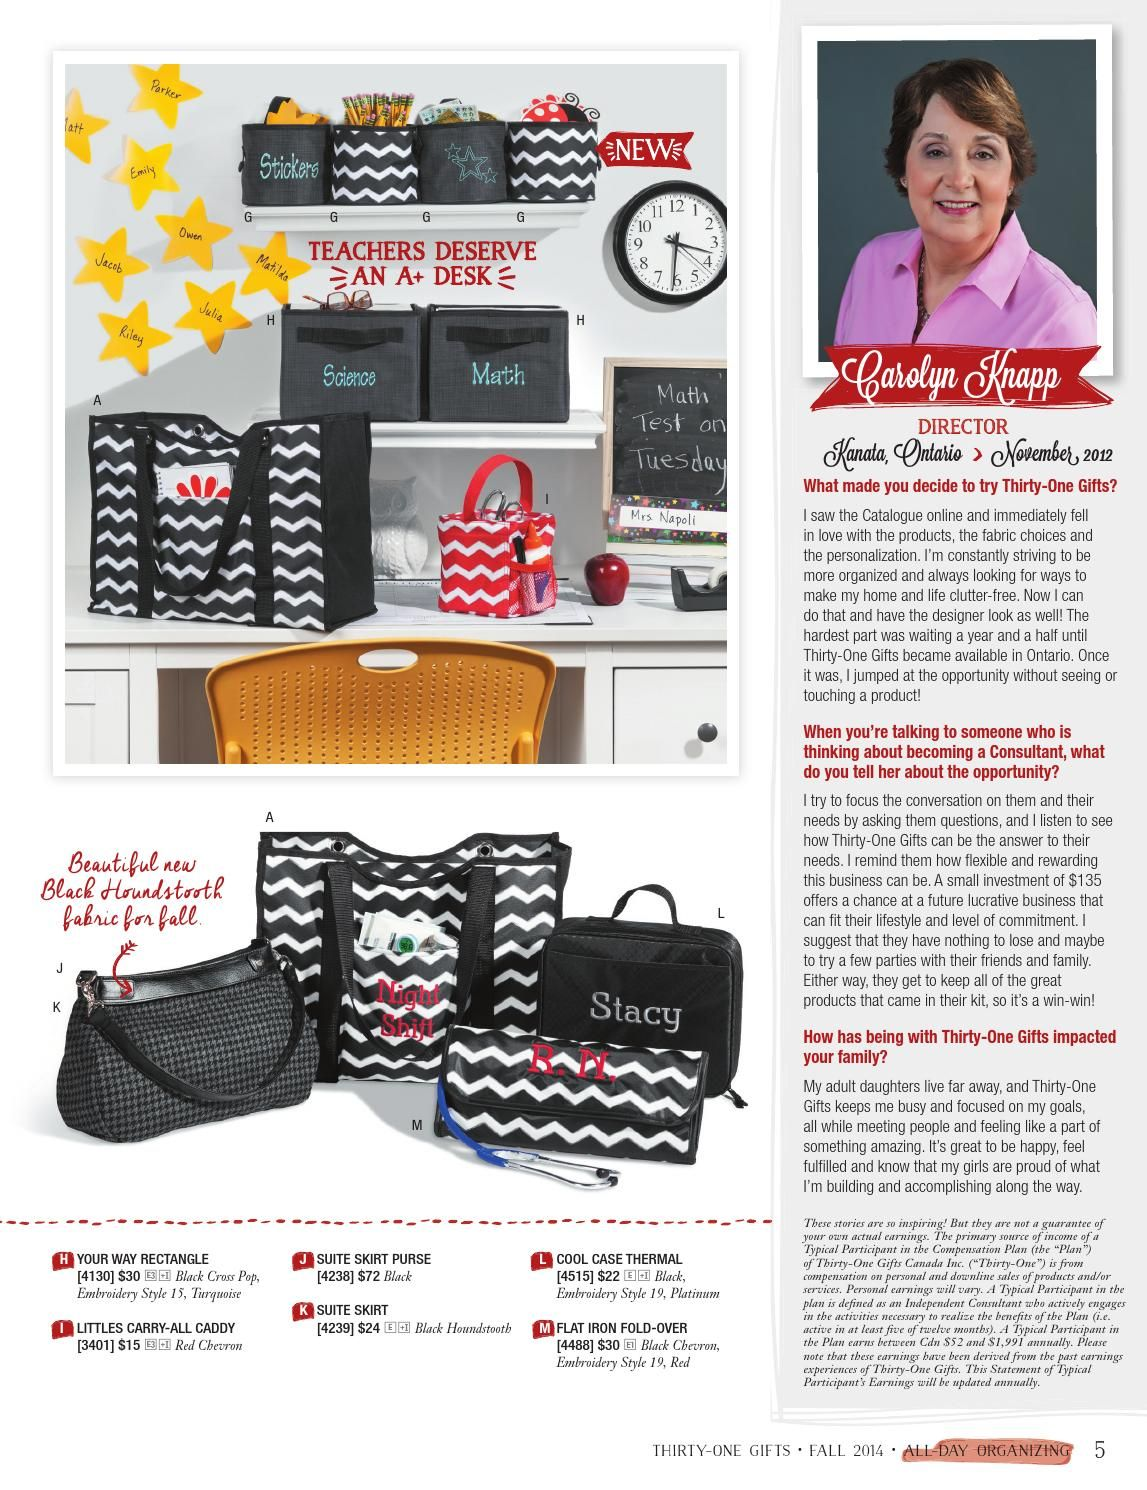 Thirty one november customer special 2014 - Thirty One November Customer Special 2014 37